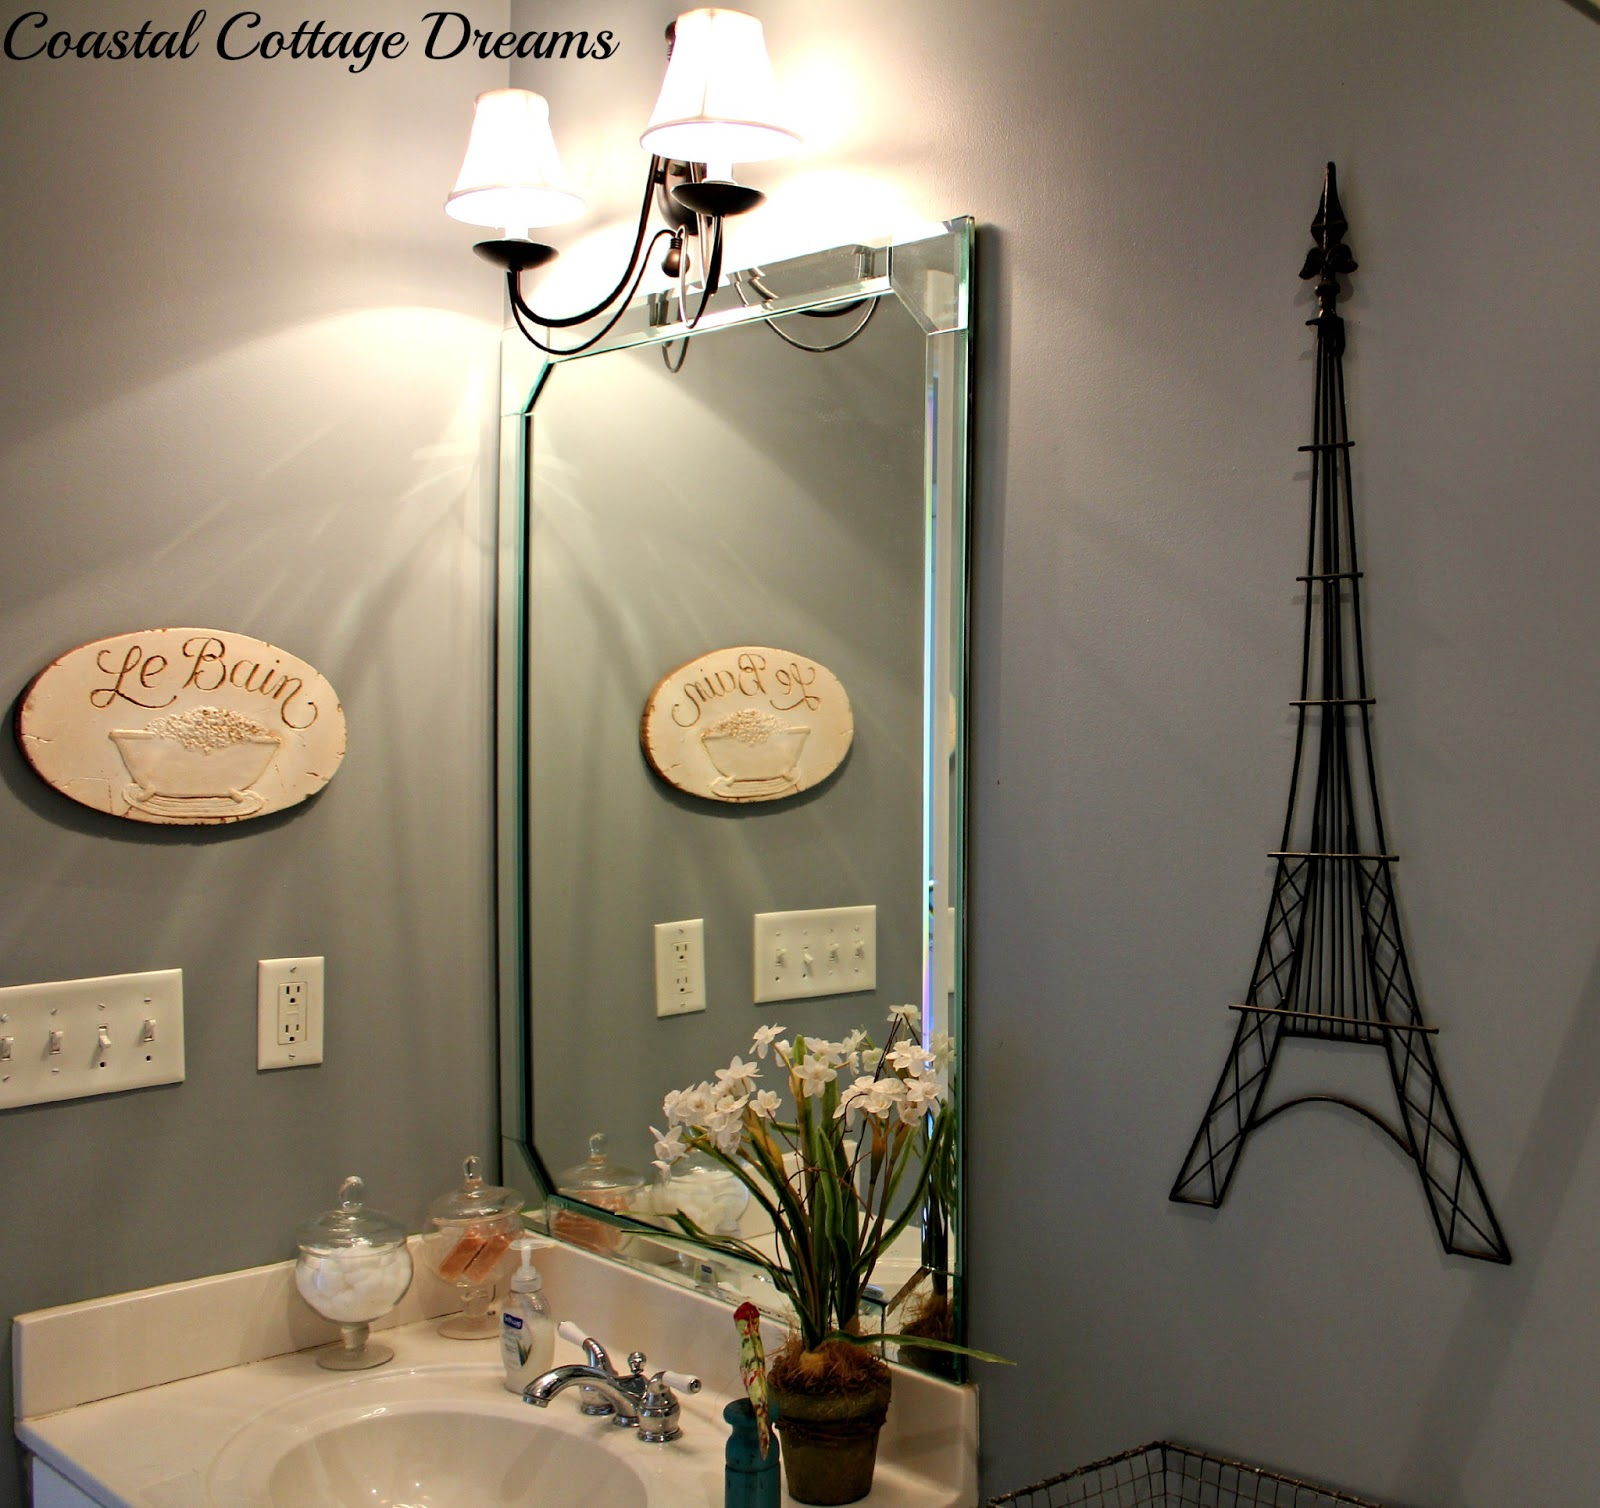 sunflowers with smiles: french touches to bathroom